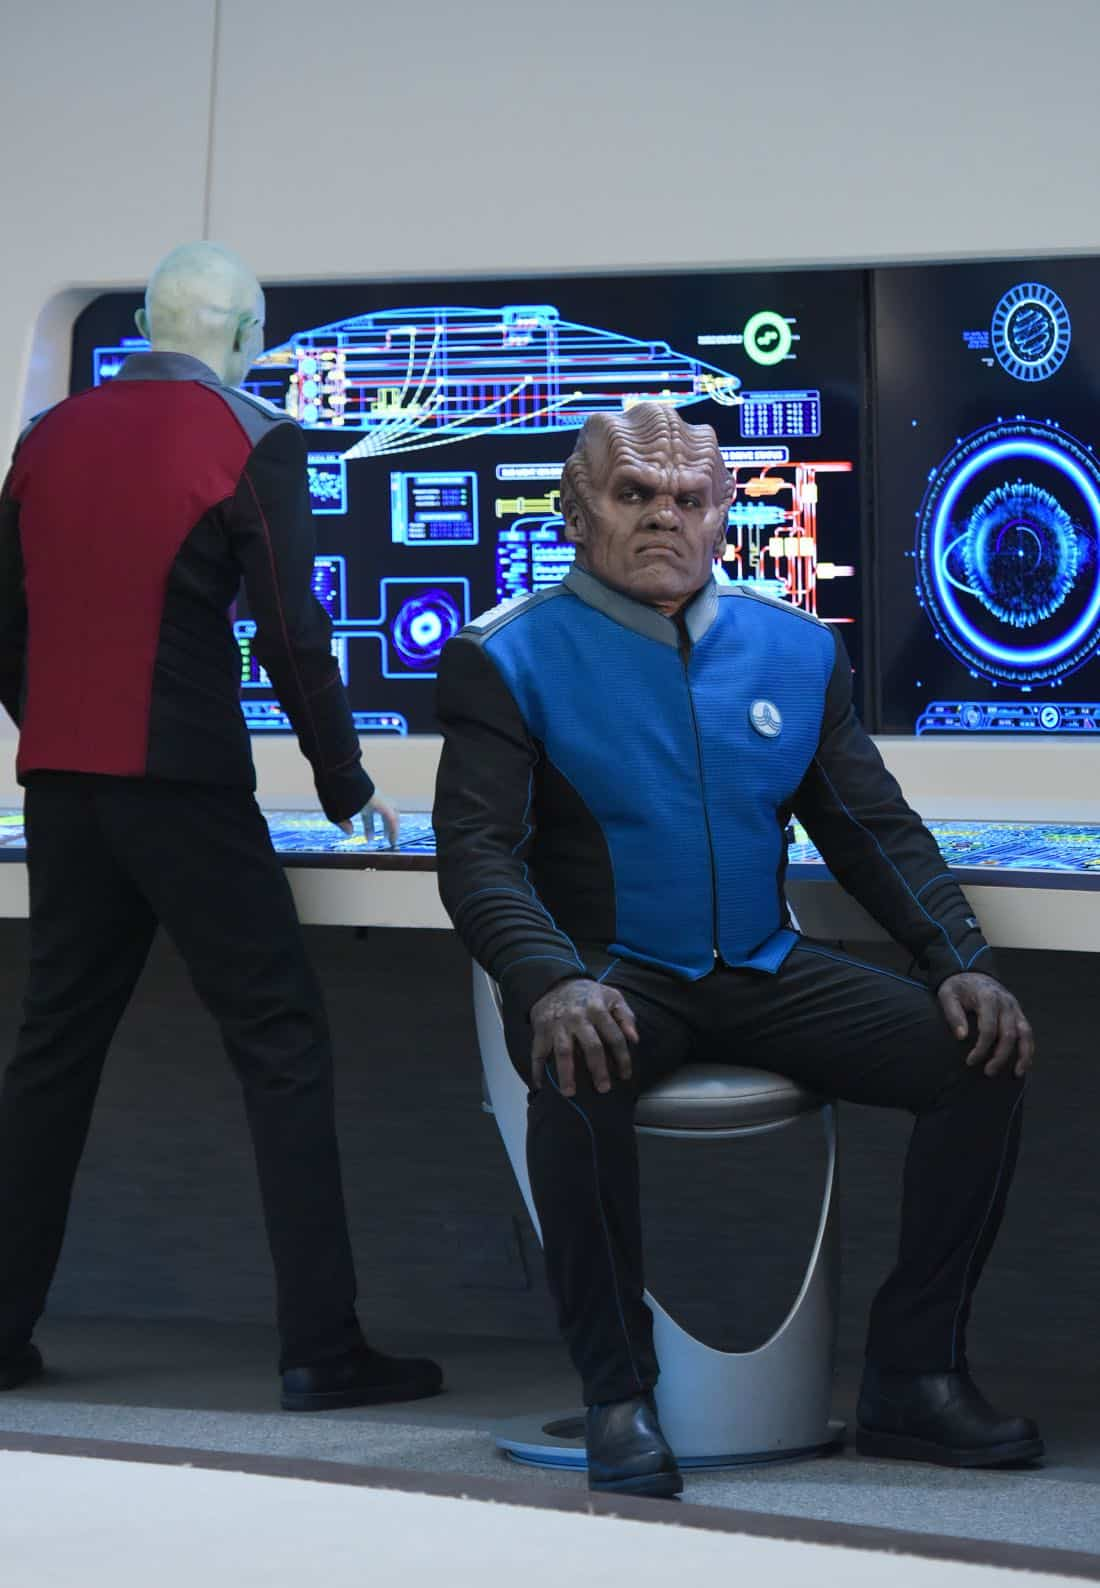 """THE ORVILLE:  Peter Macon in the """"Majority Rule"""" episode of THE ORVILLE airing Thursday, Oct. 26 (9:01-10:00 PM ET/PT) on FOX.  ©2017 Fox Broadcasting Co. Cr:  Michael Becker/FOX"""